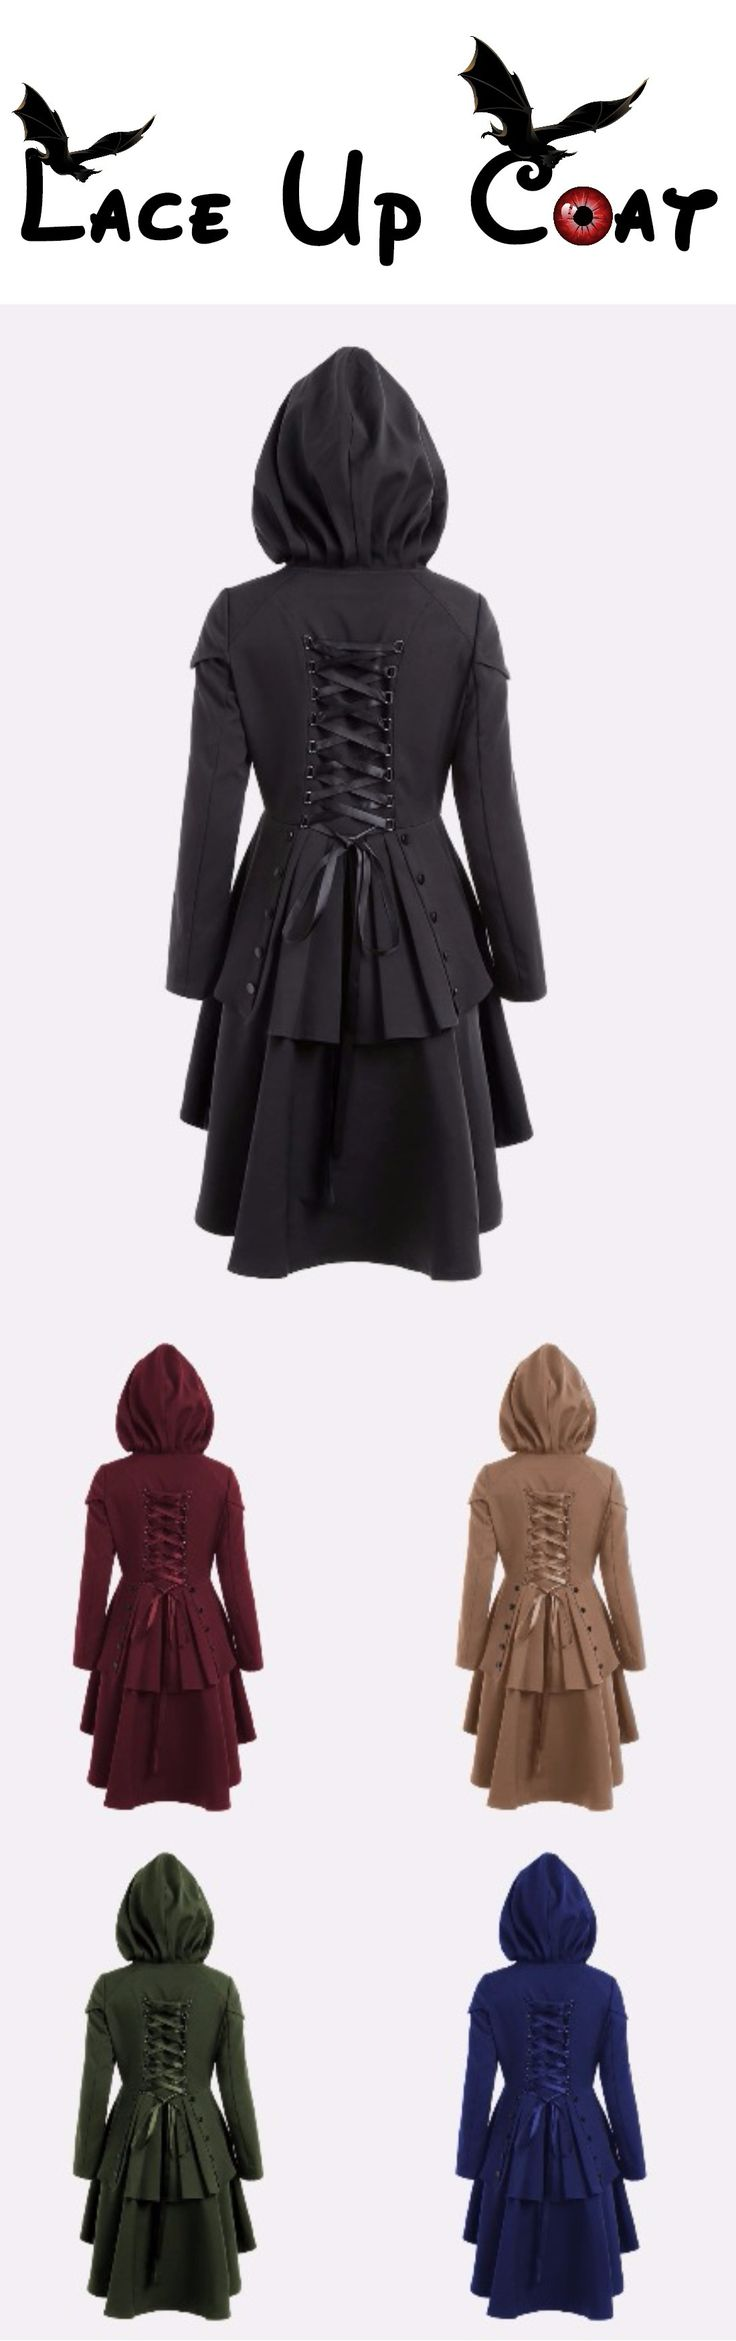 Happy Halloween Costume | $22.07 | Layered Lace Up High Low Hooded Coat | Sammydress.com